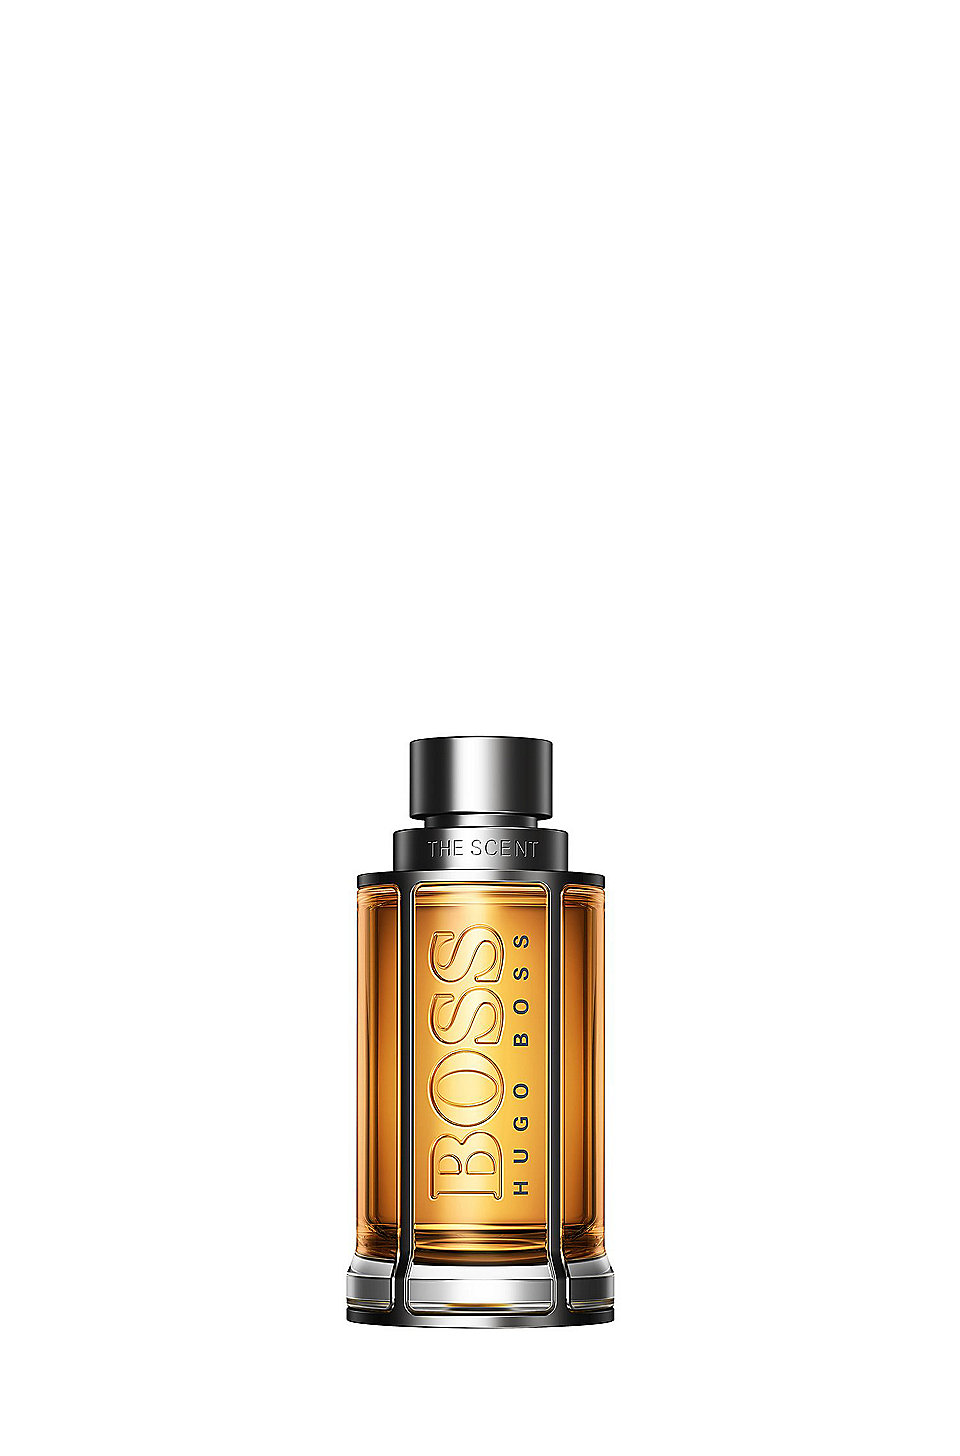 Boss Boss The Scent Eau De Toilette 50ml